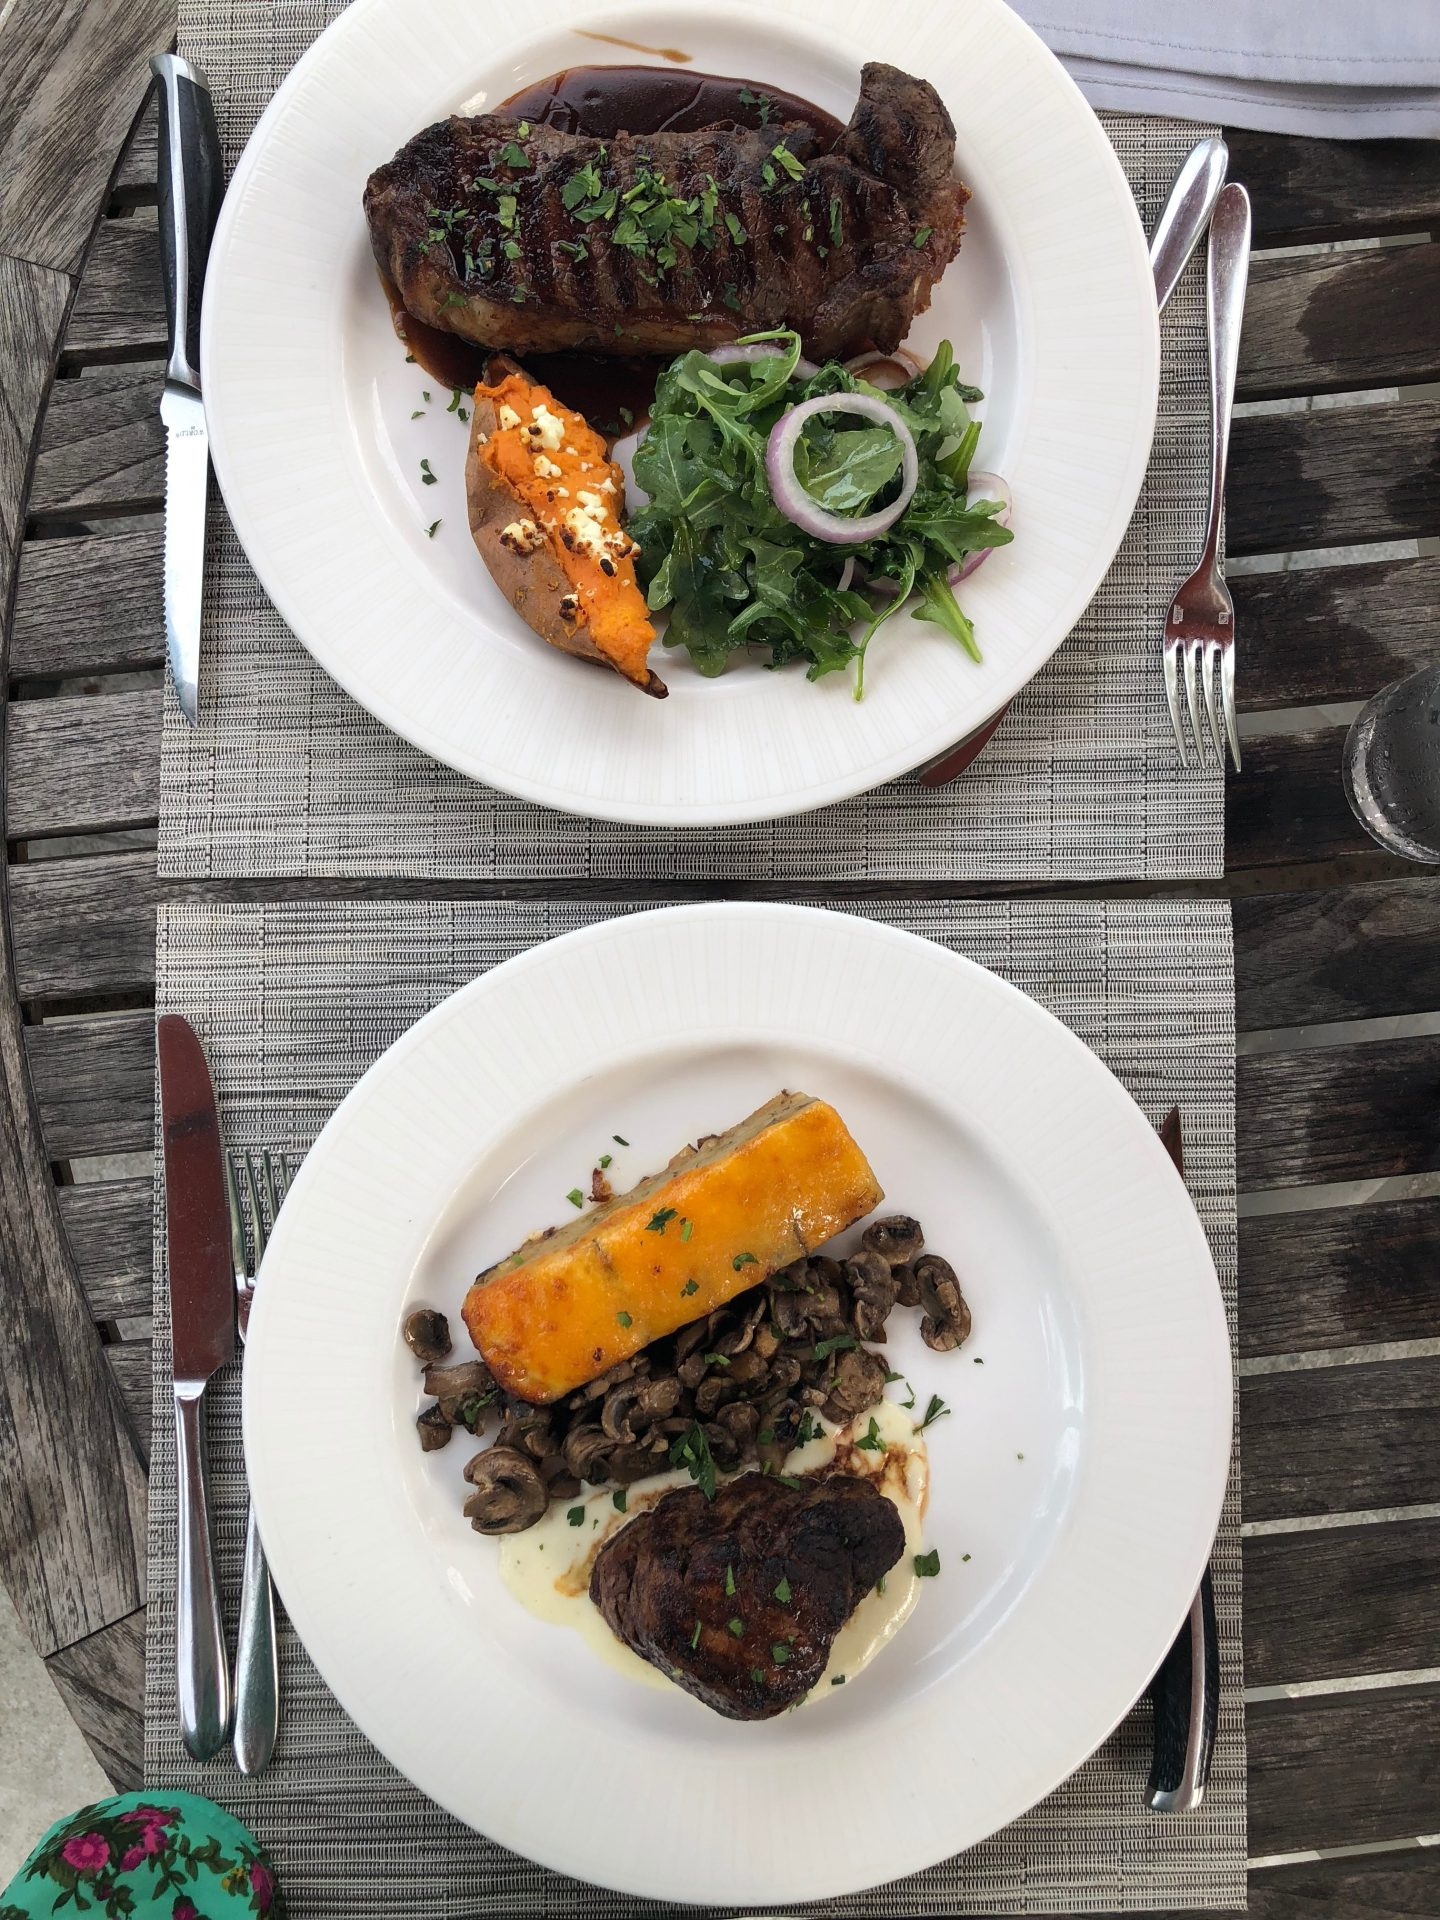 Lifestyle Blogger Chocolate and Lace shares photos of her special dinner at Heywards at the Sonesta in Hilton Head Island.